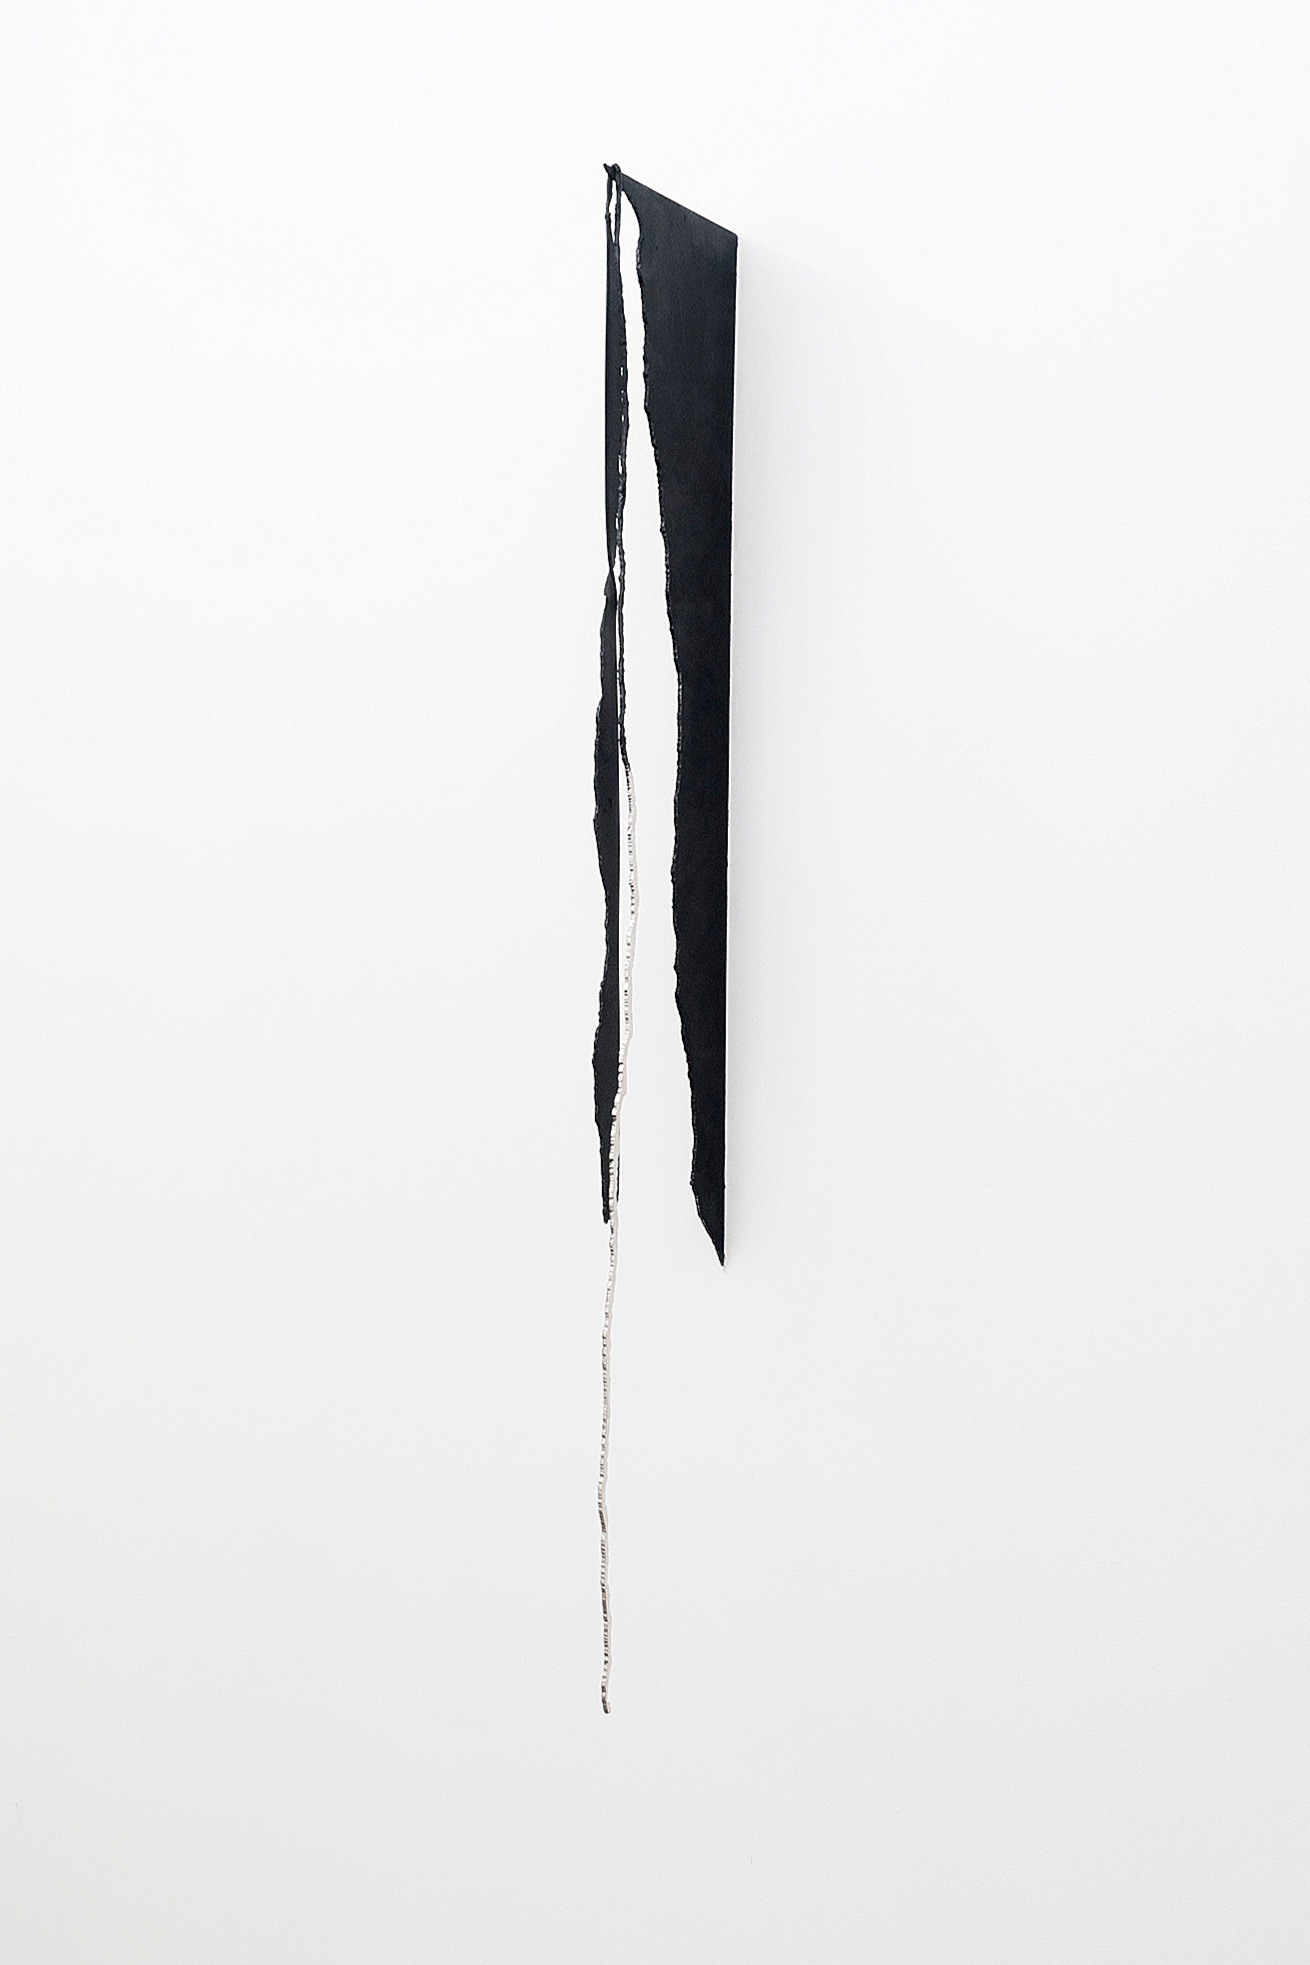 Cascade, 2013graphite and steel nickel plating on blue steel plate62 x 10 x 1 inches -